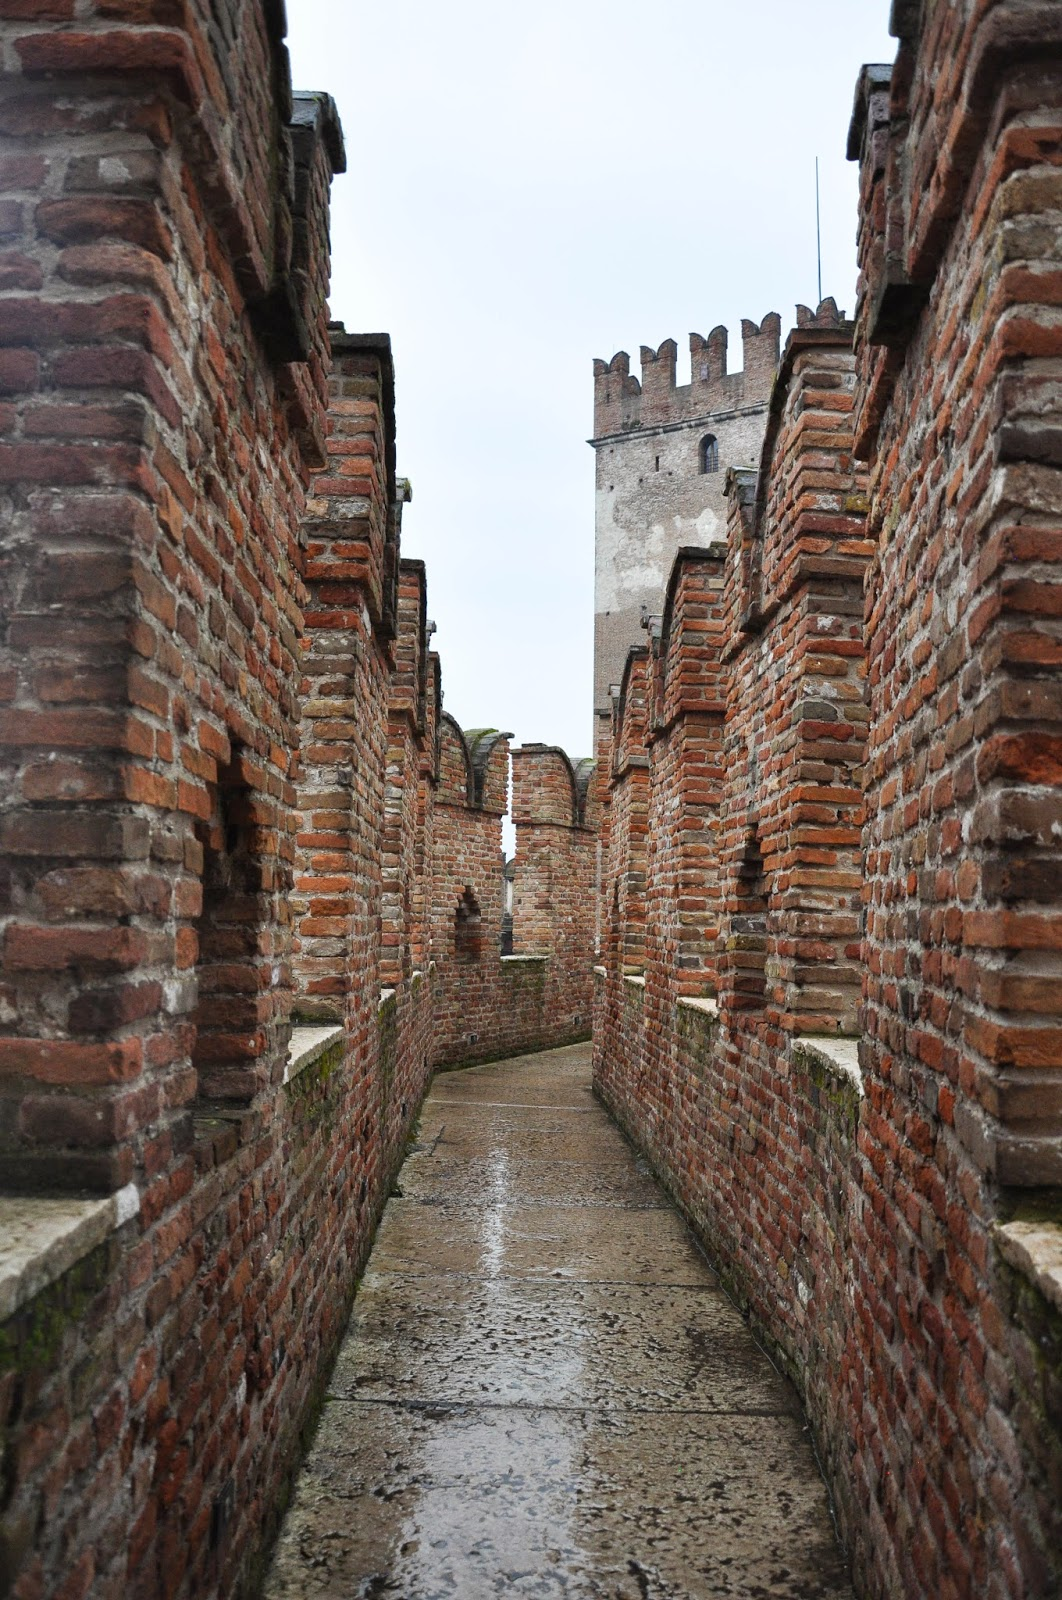 Among the battlements of Castelvecchio in Verona